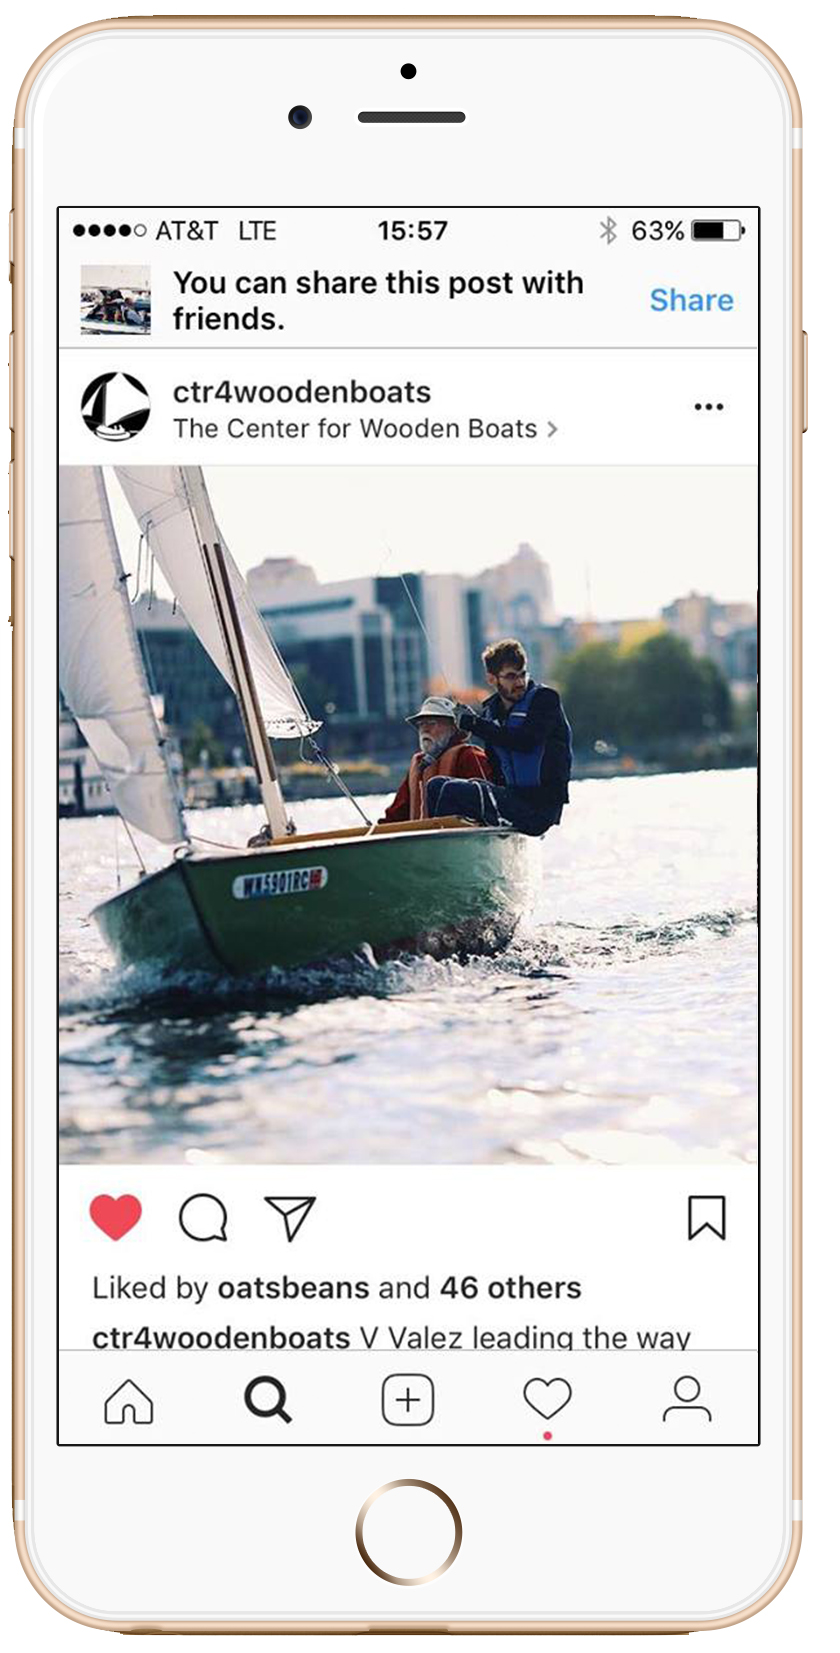 Photos for the Center for Wooden Boats used on their Instagram profile.